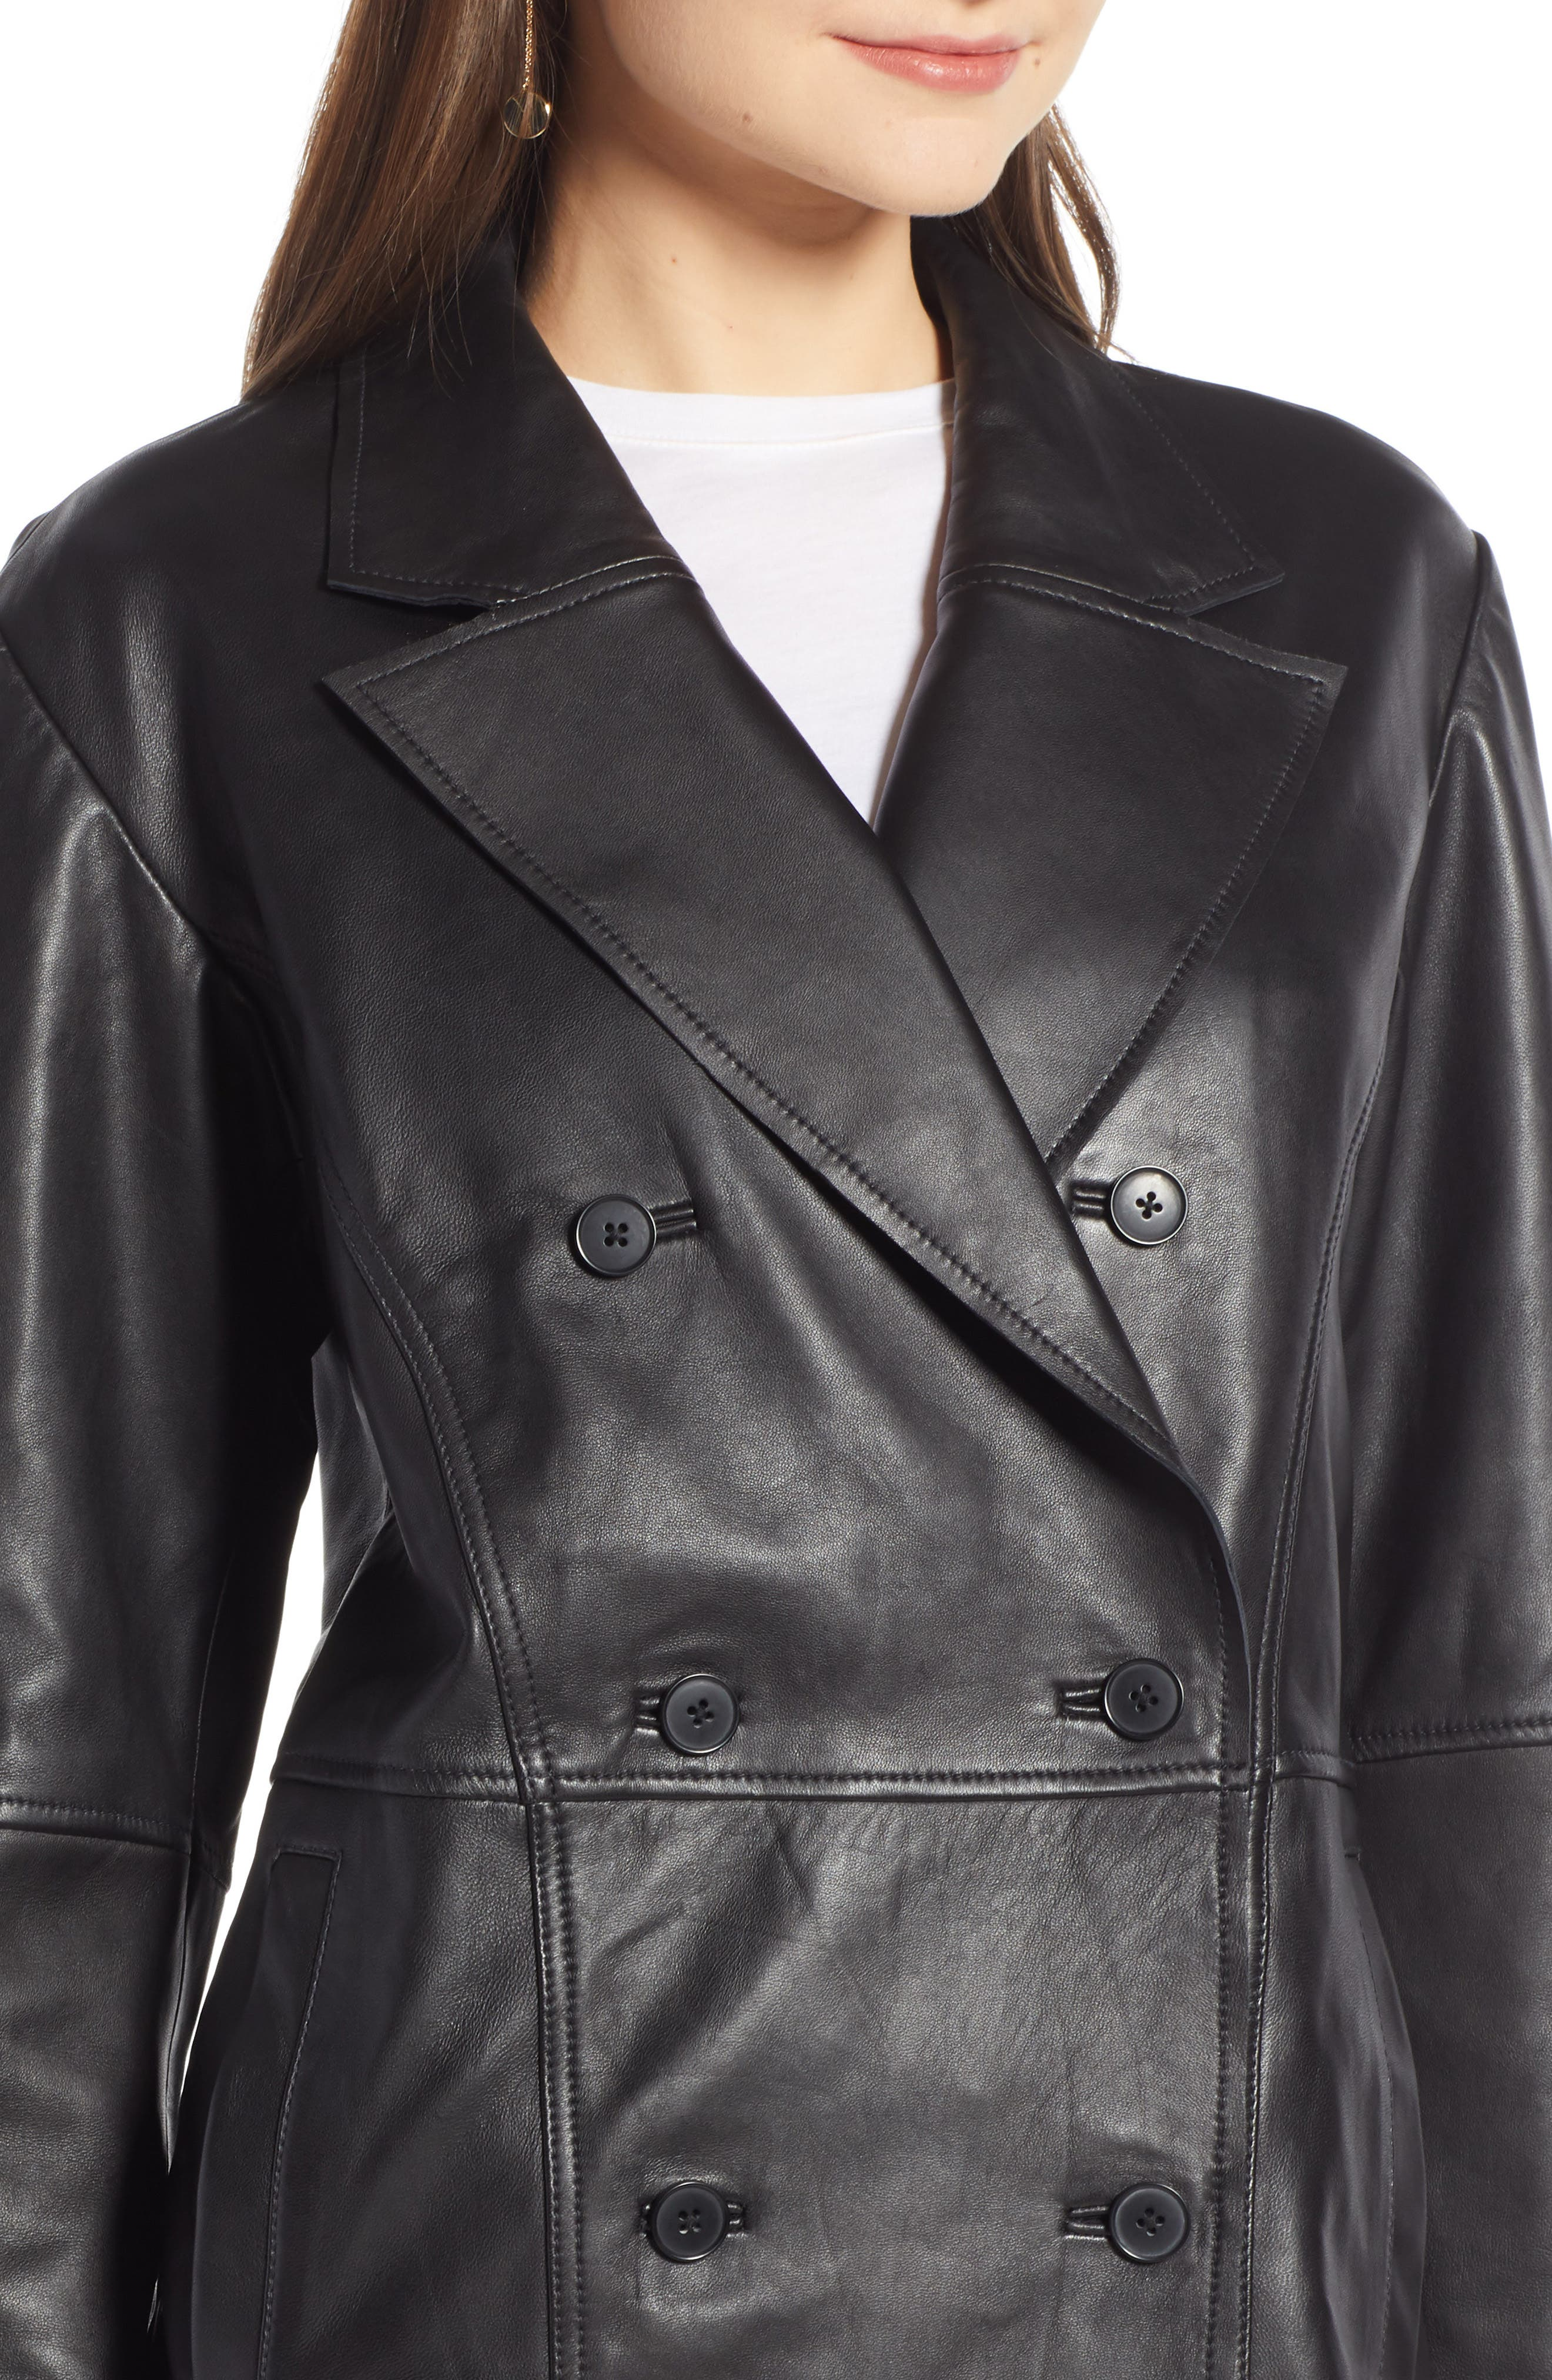 Double Breasted Leather Coat,                             Alternate thumbnail 4, color,                             BLACK